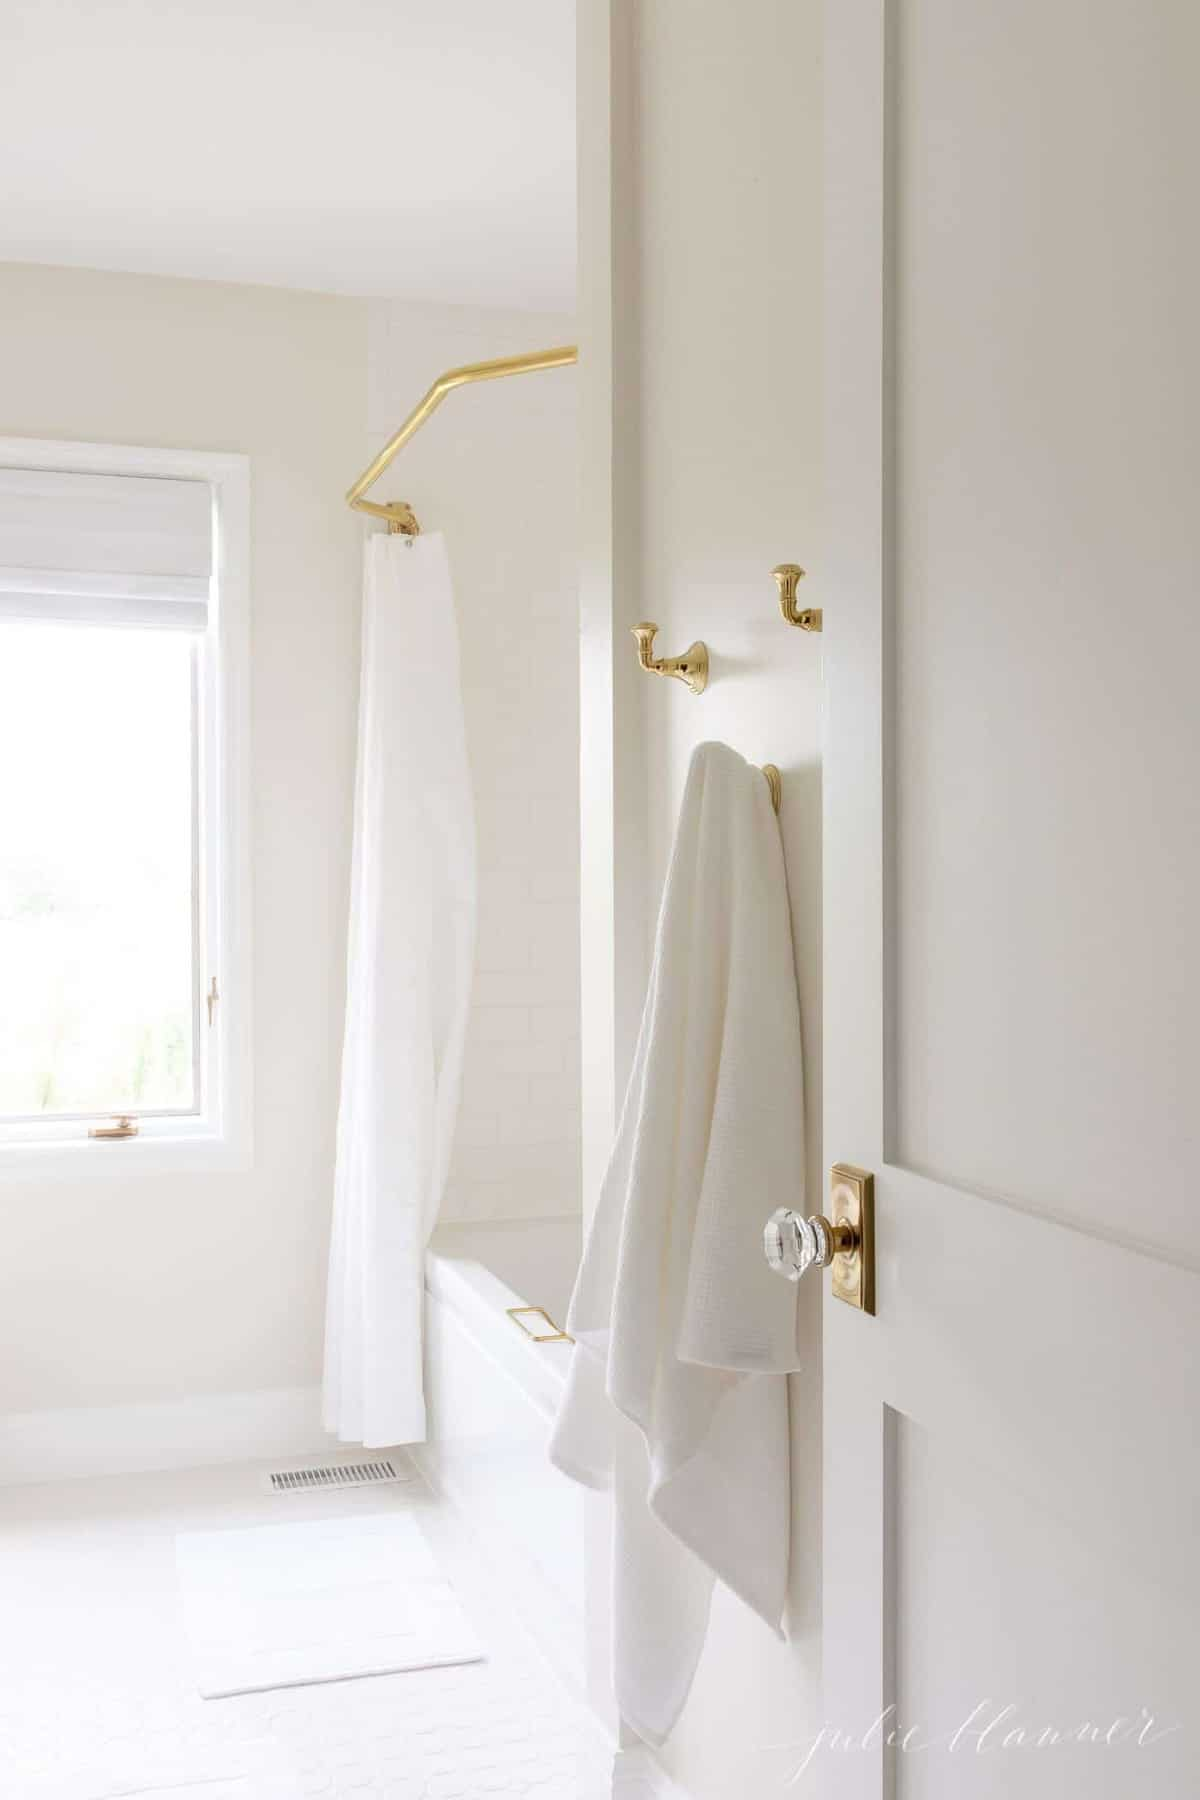 Looking into a white bathroom that uses Benjamin Moore White Dove for trim paint.